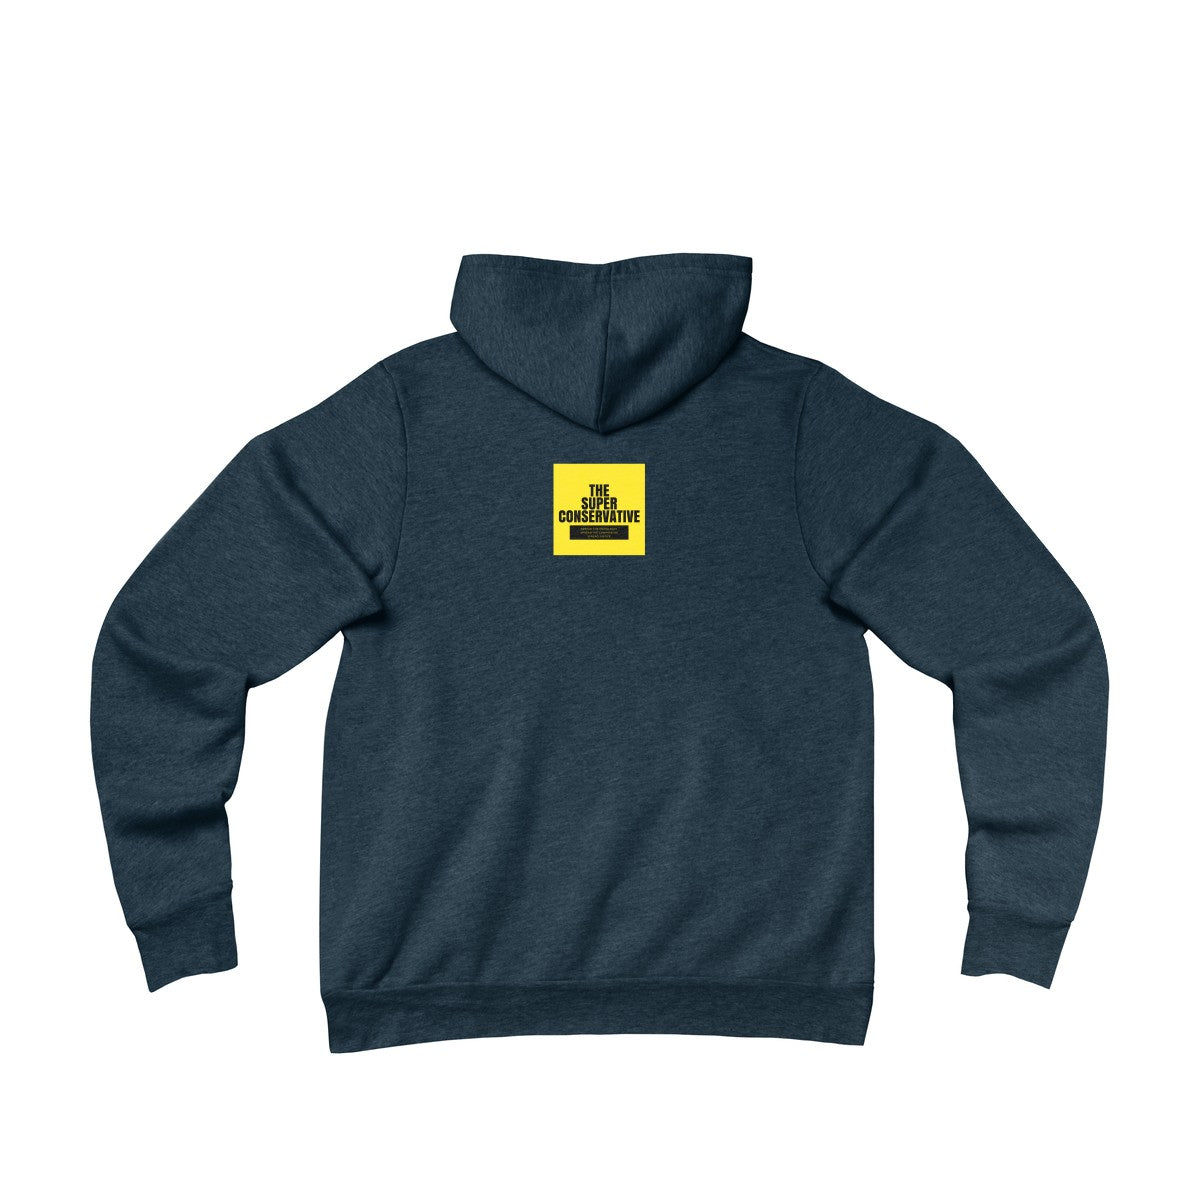 Make Men Great Again - Unisex Hoodie